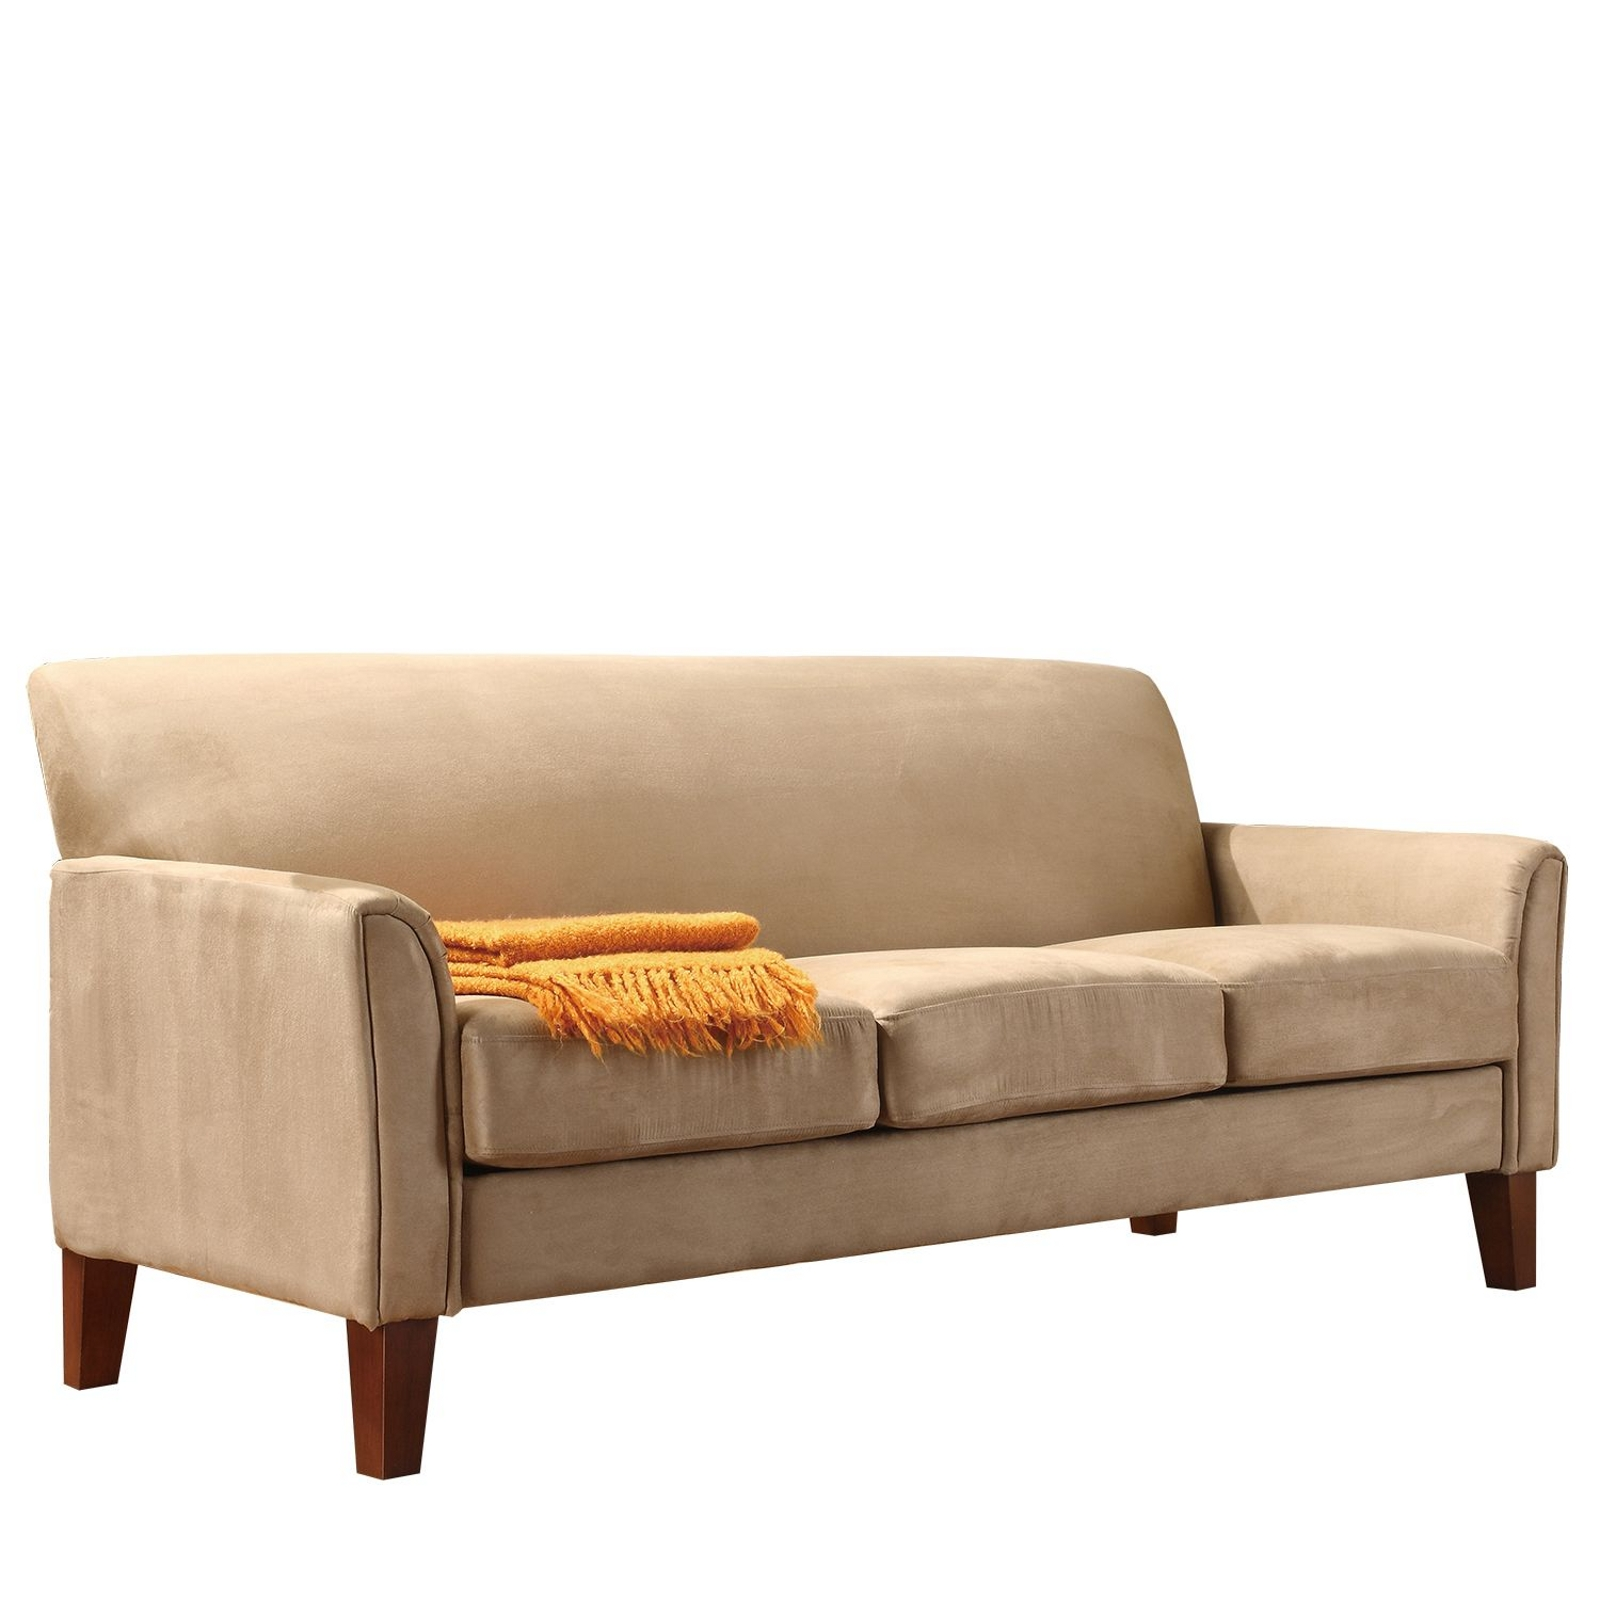 sears clearwater sofa sectional recliner uk oxford creek park hill in peat microfiber home